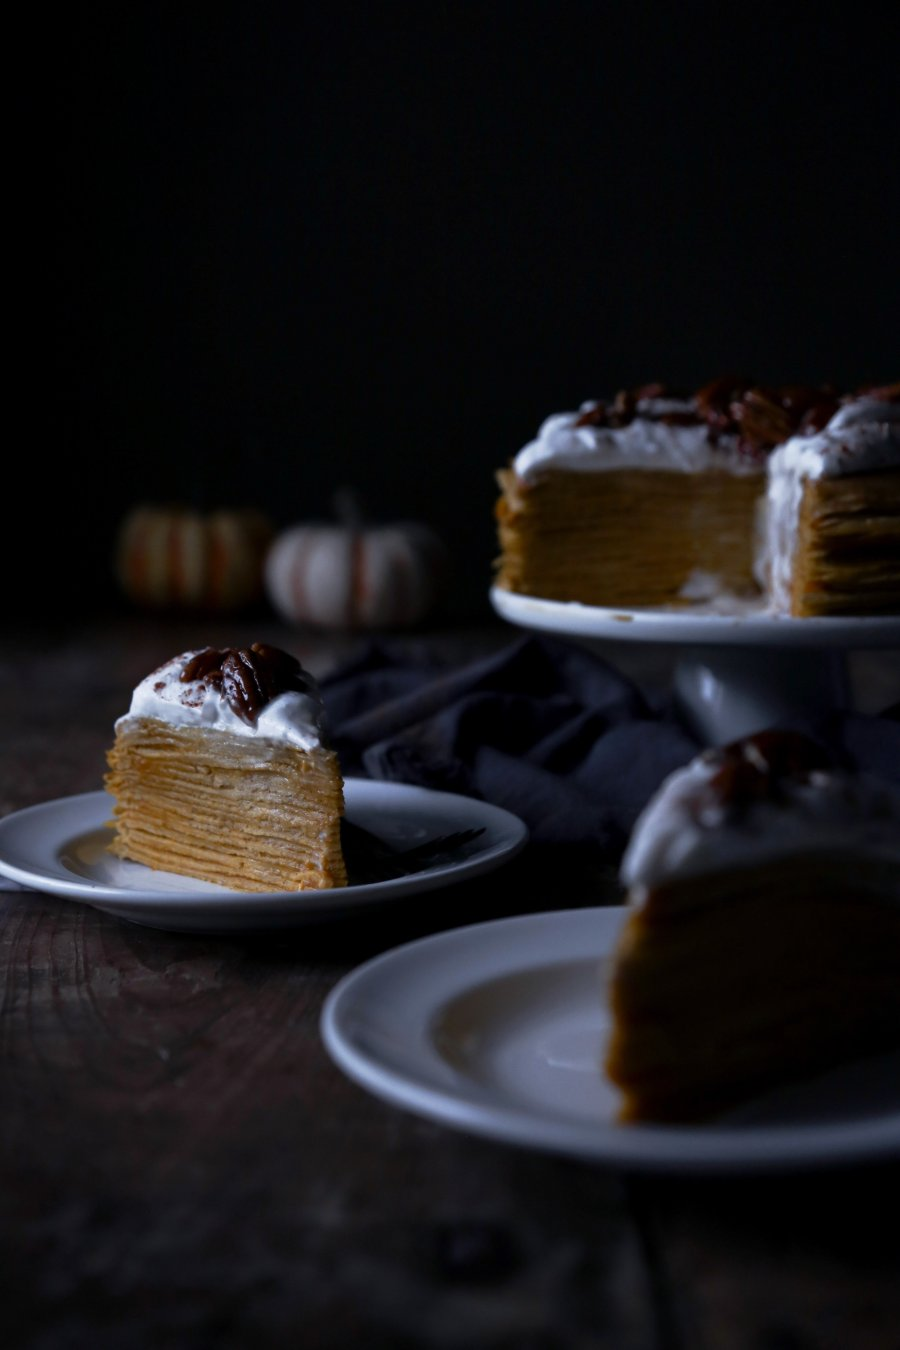 Pumpkin Crepe Cake with Spiced Coconut Cream and Maple Candied Pecans | Free of gluten, dairy, and refined sugar.